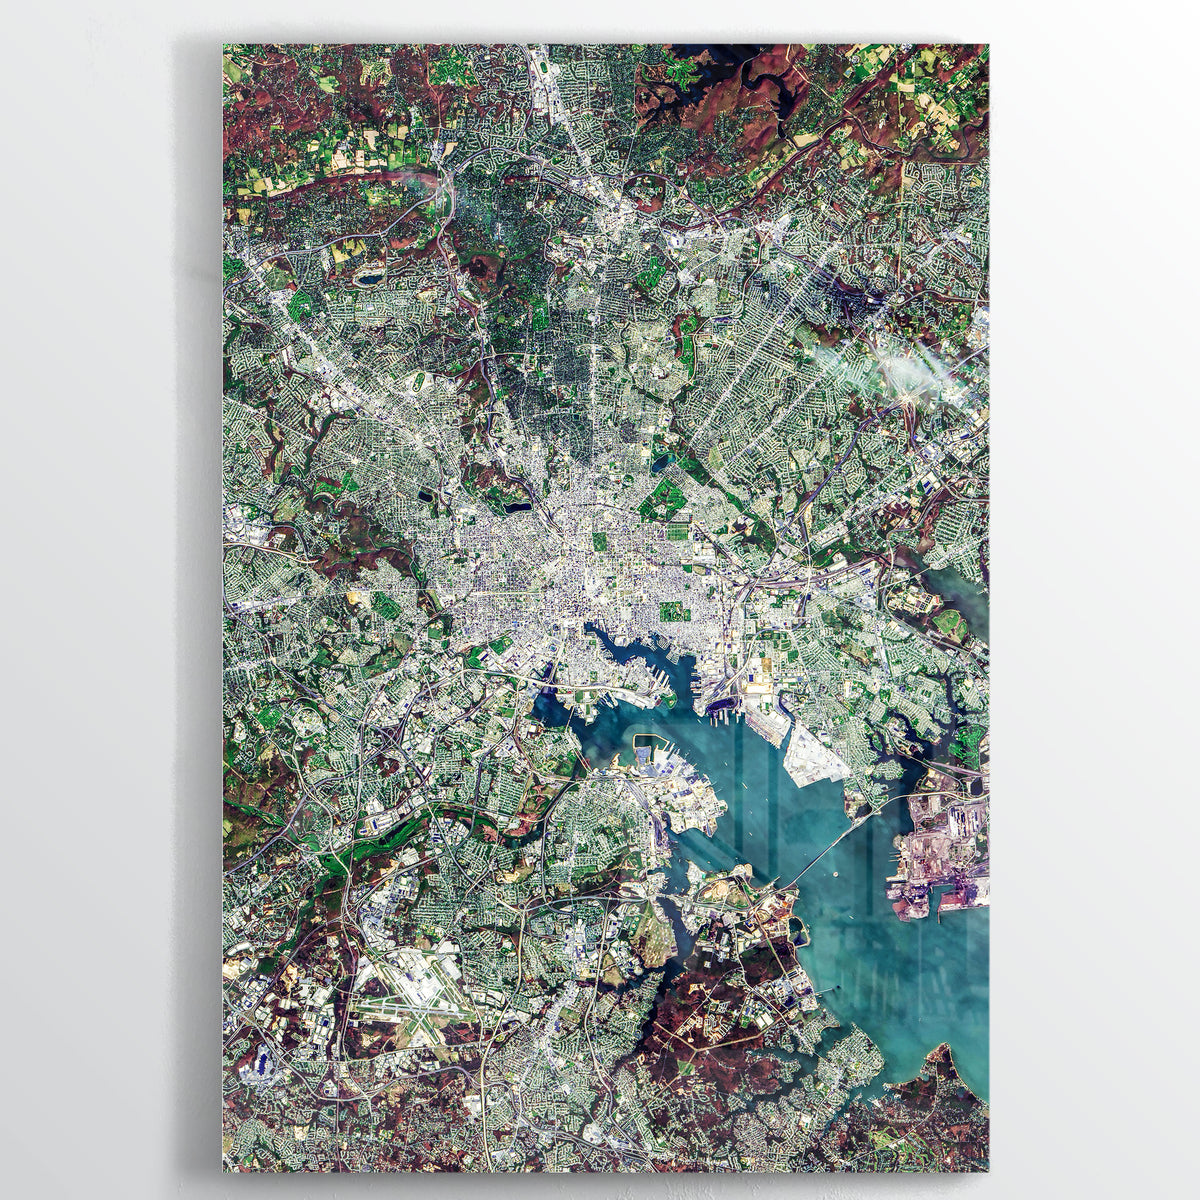 DC/Baltimore Earth Photography - Floating Acrylic Art - Point Two Design